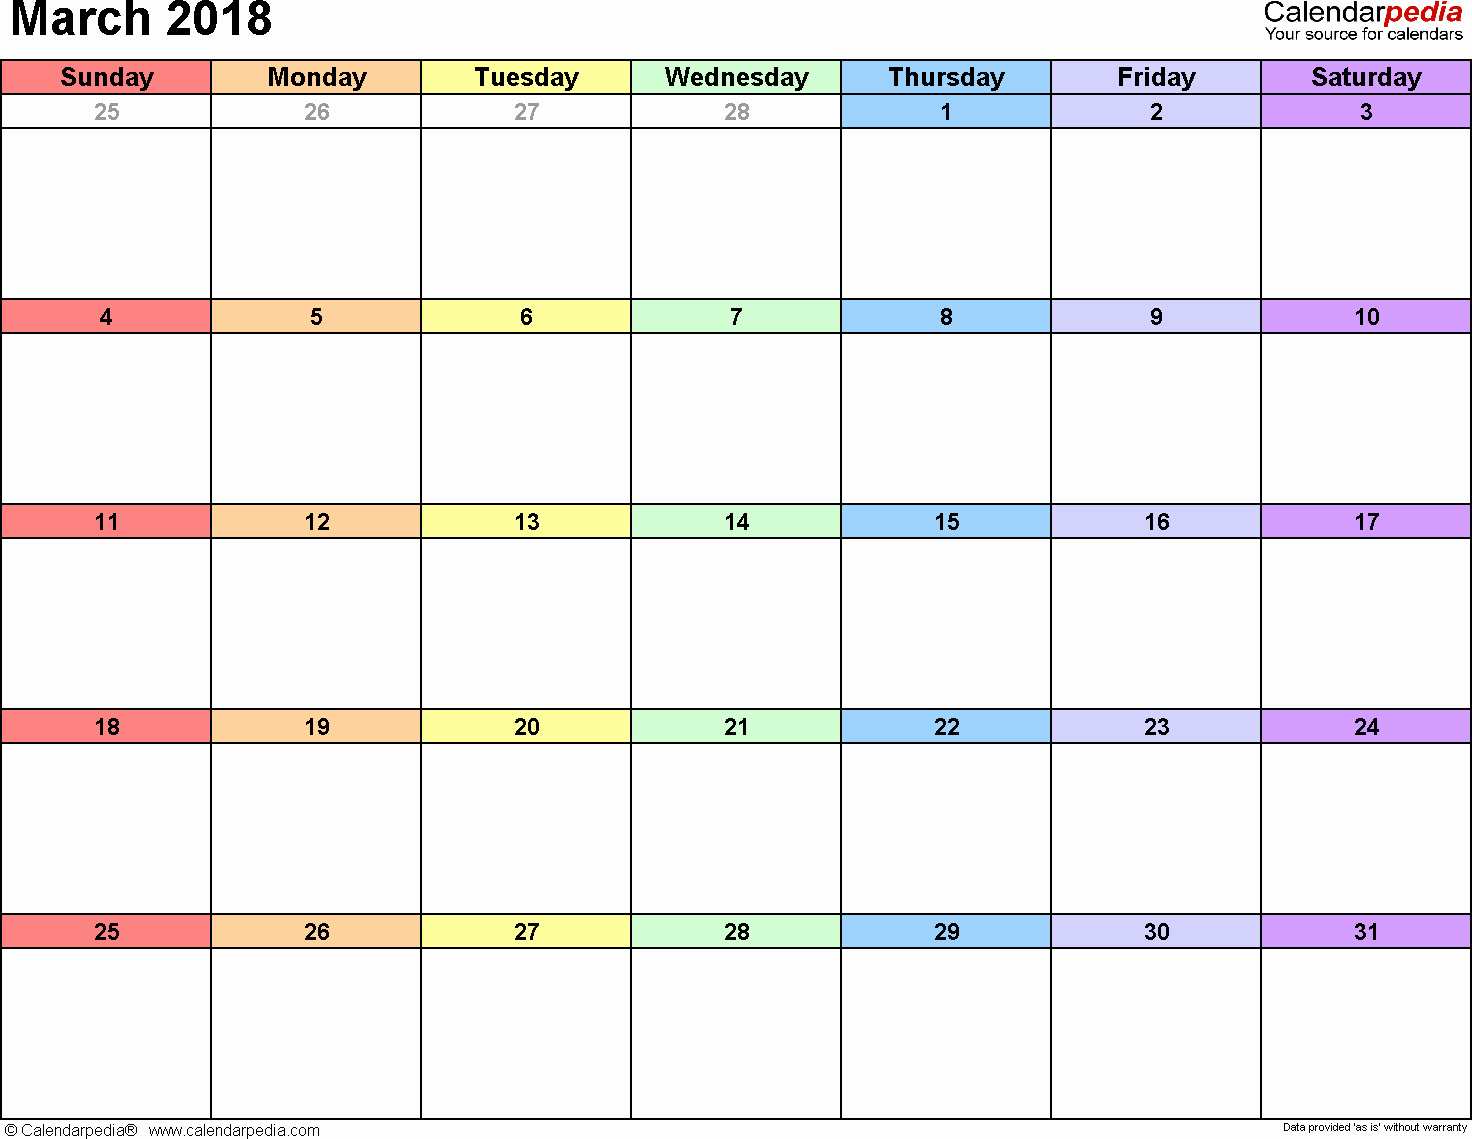 Free Printable 2018 Calendar Templates Beautiful March 2018 Calendar Template